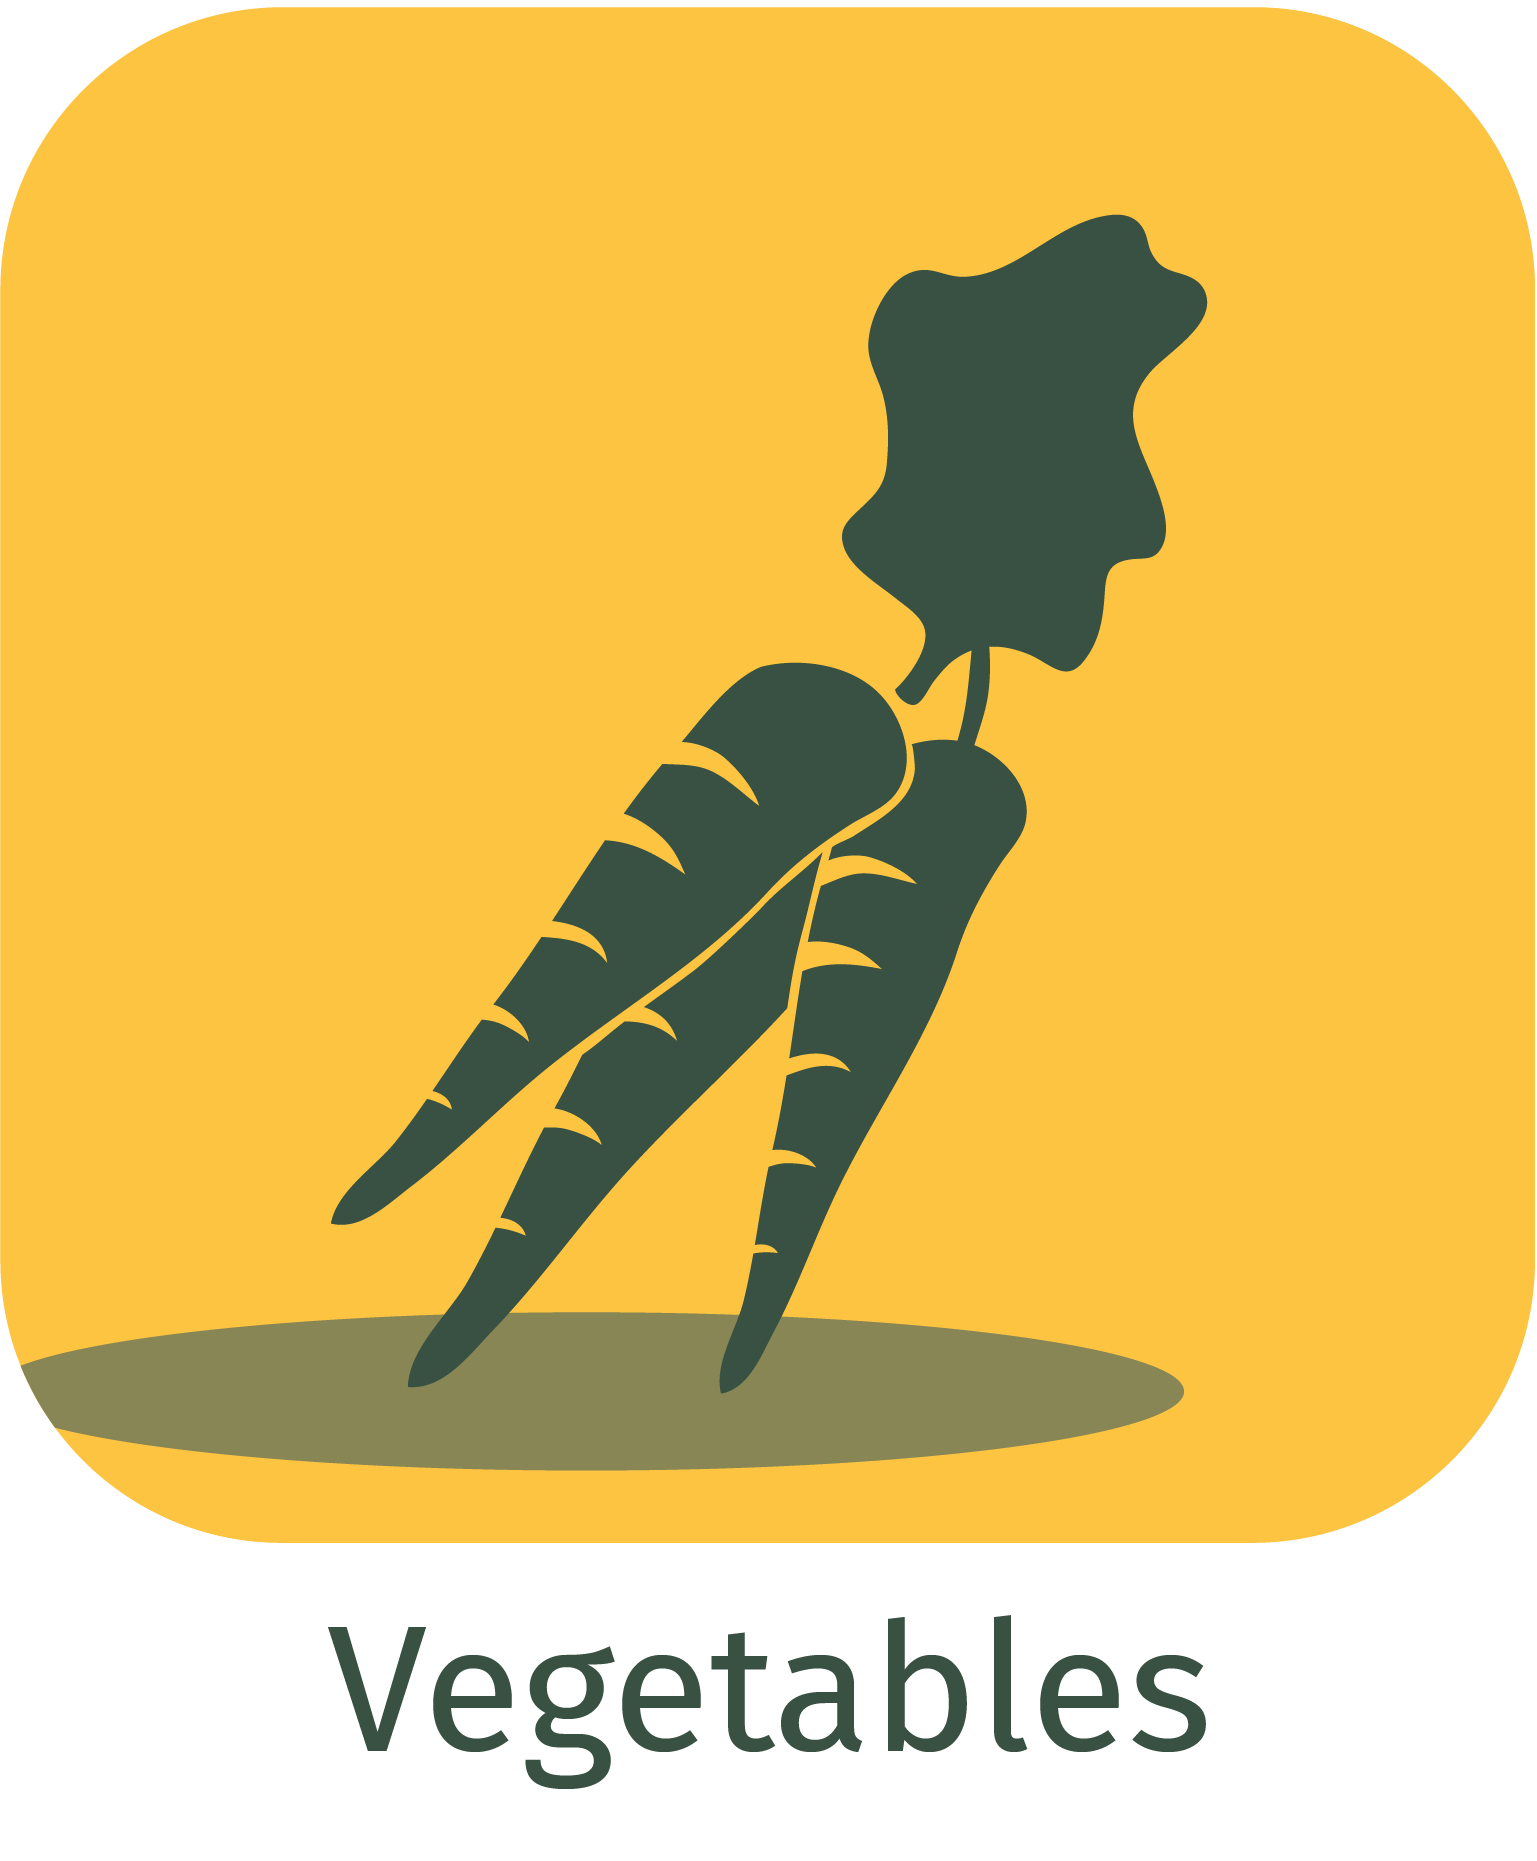 vegetables app icon